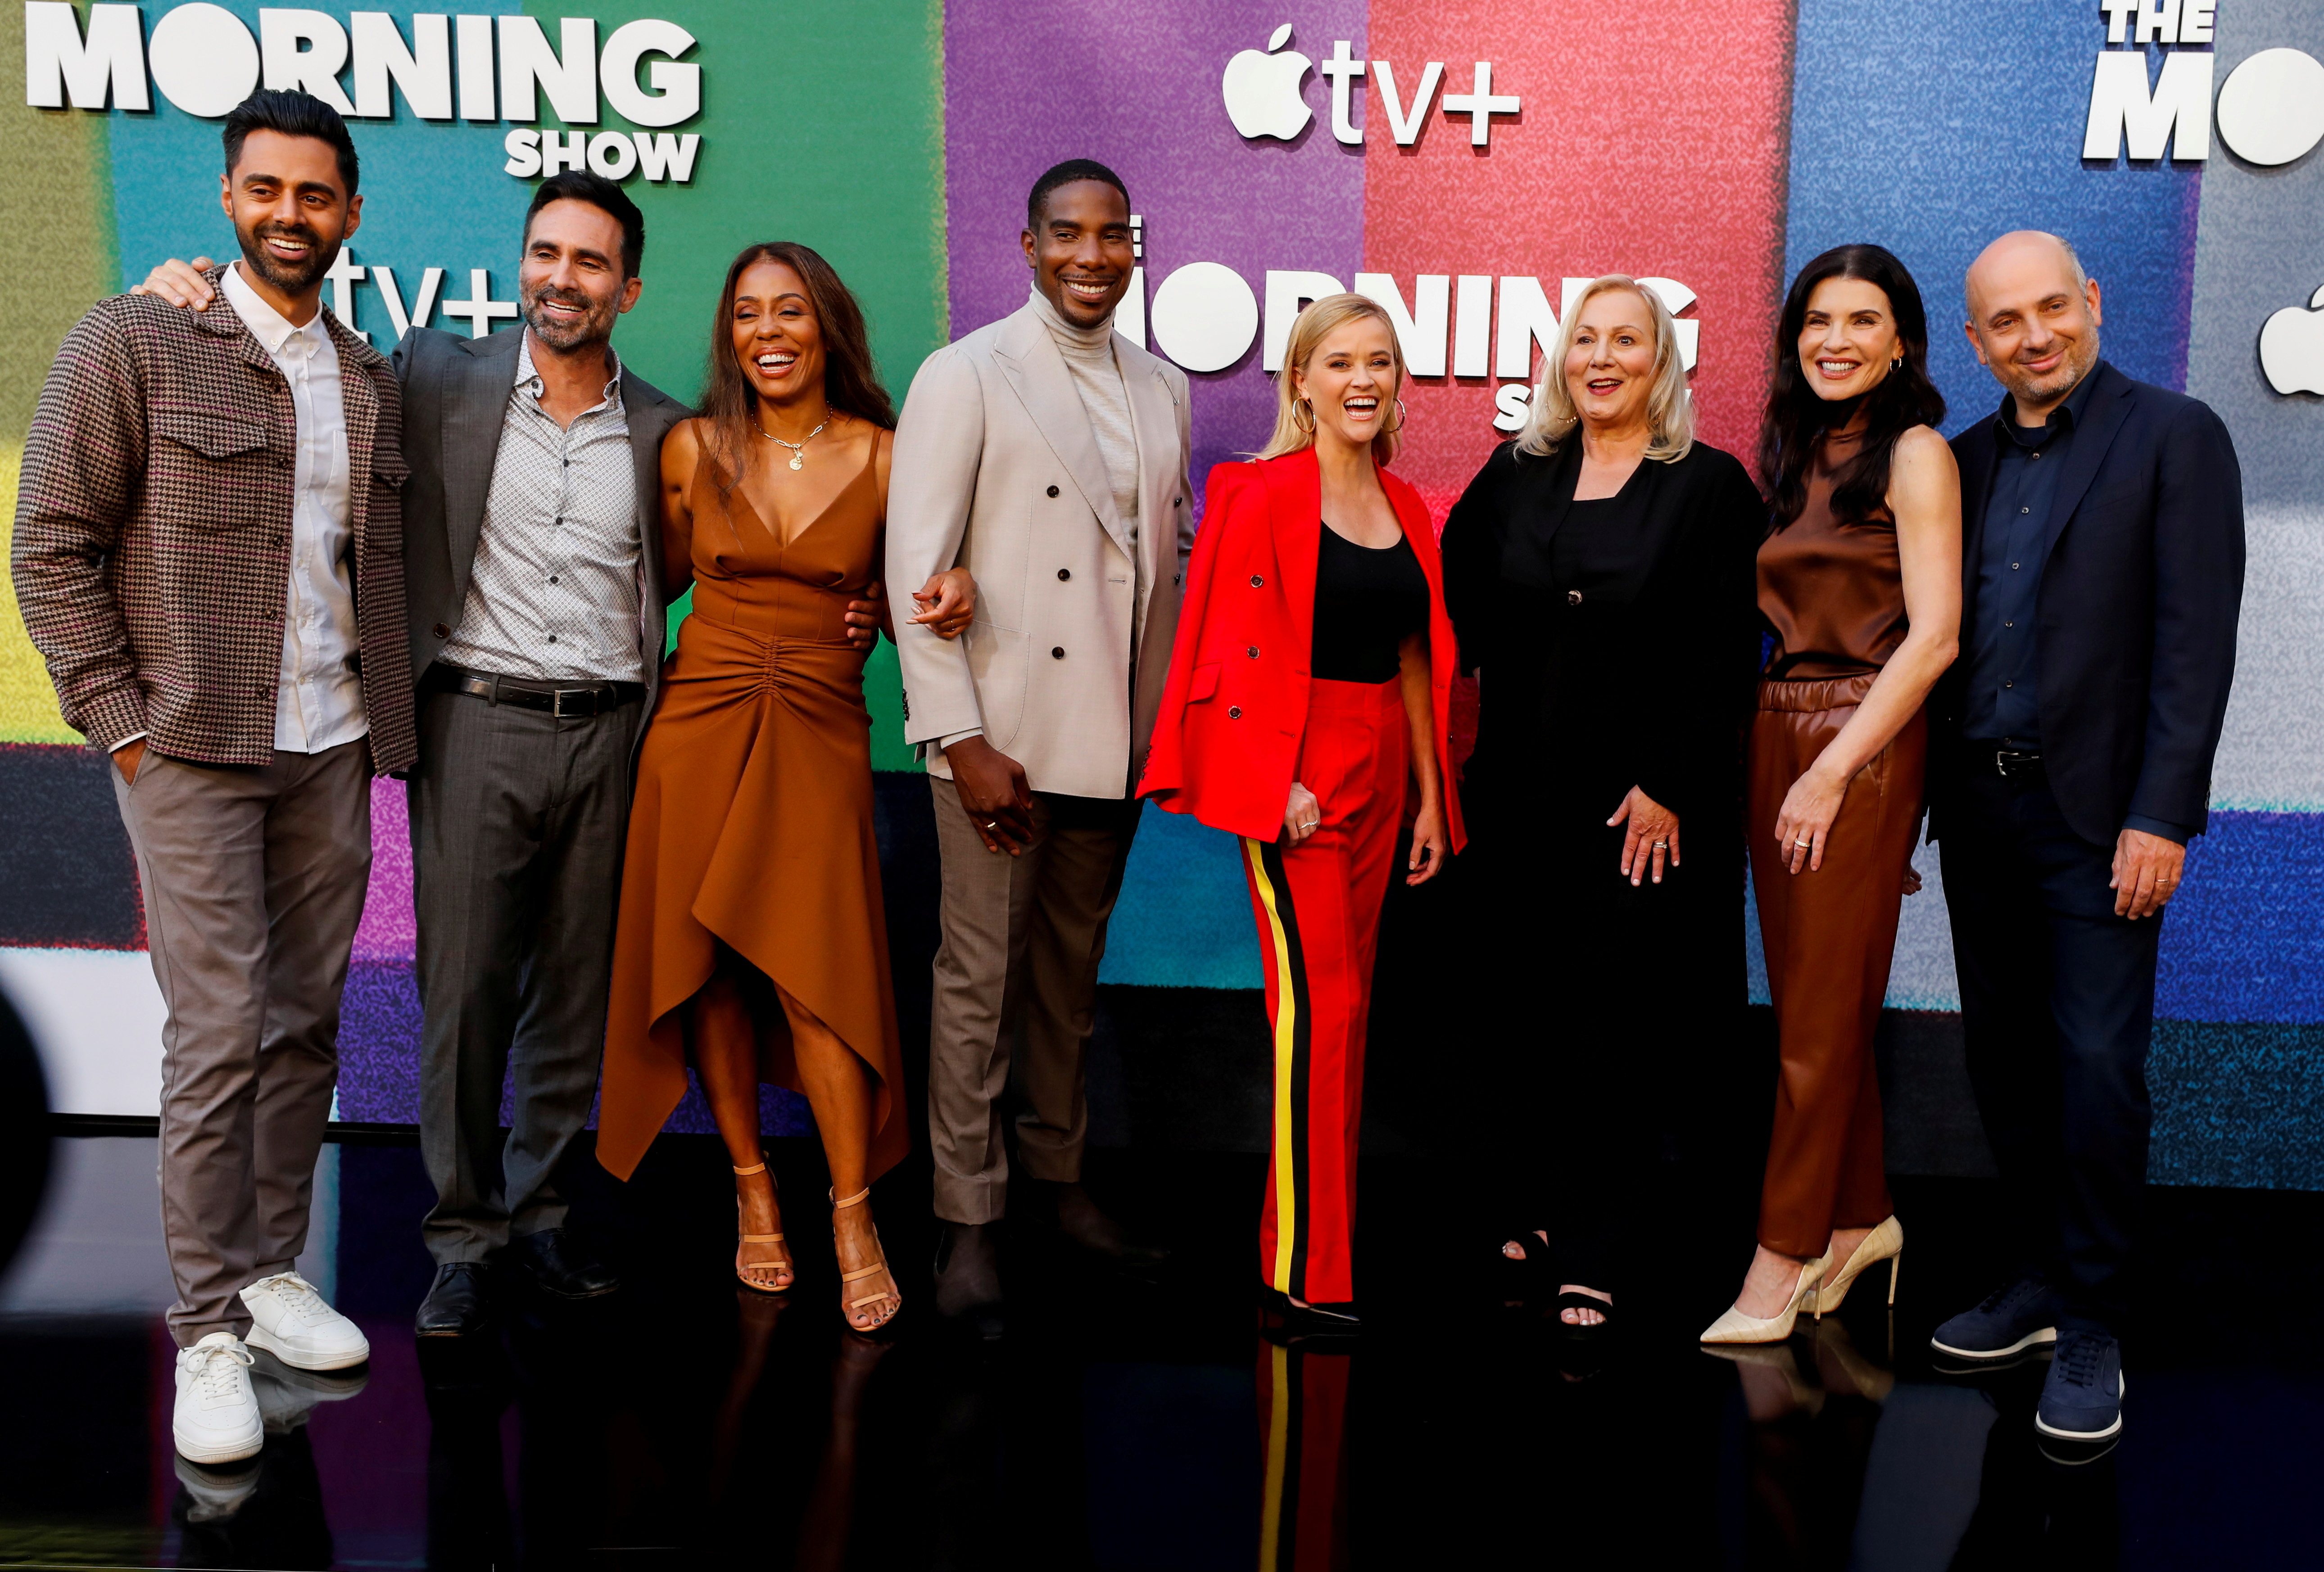 Cast member and executive producer Reese Witherspoon (in red) poses with co-stars Hasan Minhaj, Nestor Carbonell, Karen Pittman, Desean K. Terry, Julianna Margulies and director Mimi Leder and executive producer Michael Ellenberg at a photo call for season two of the television series